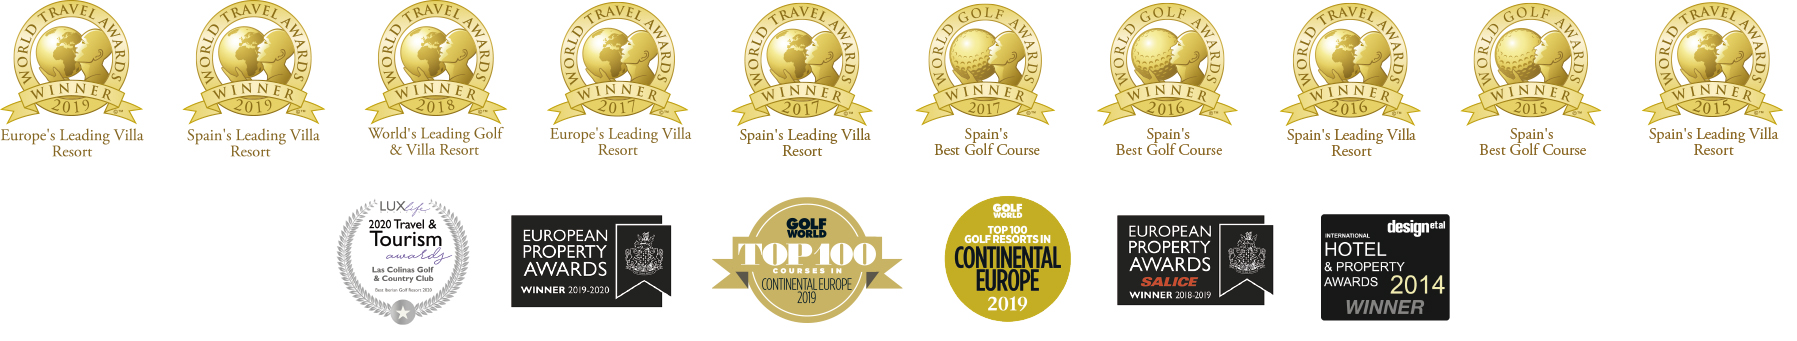 las colinas golf awards 2020